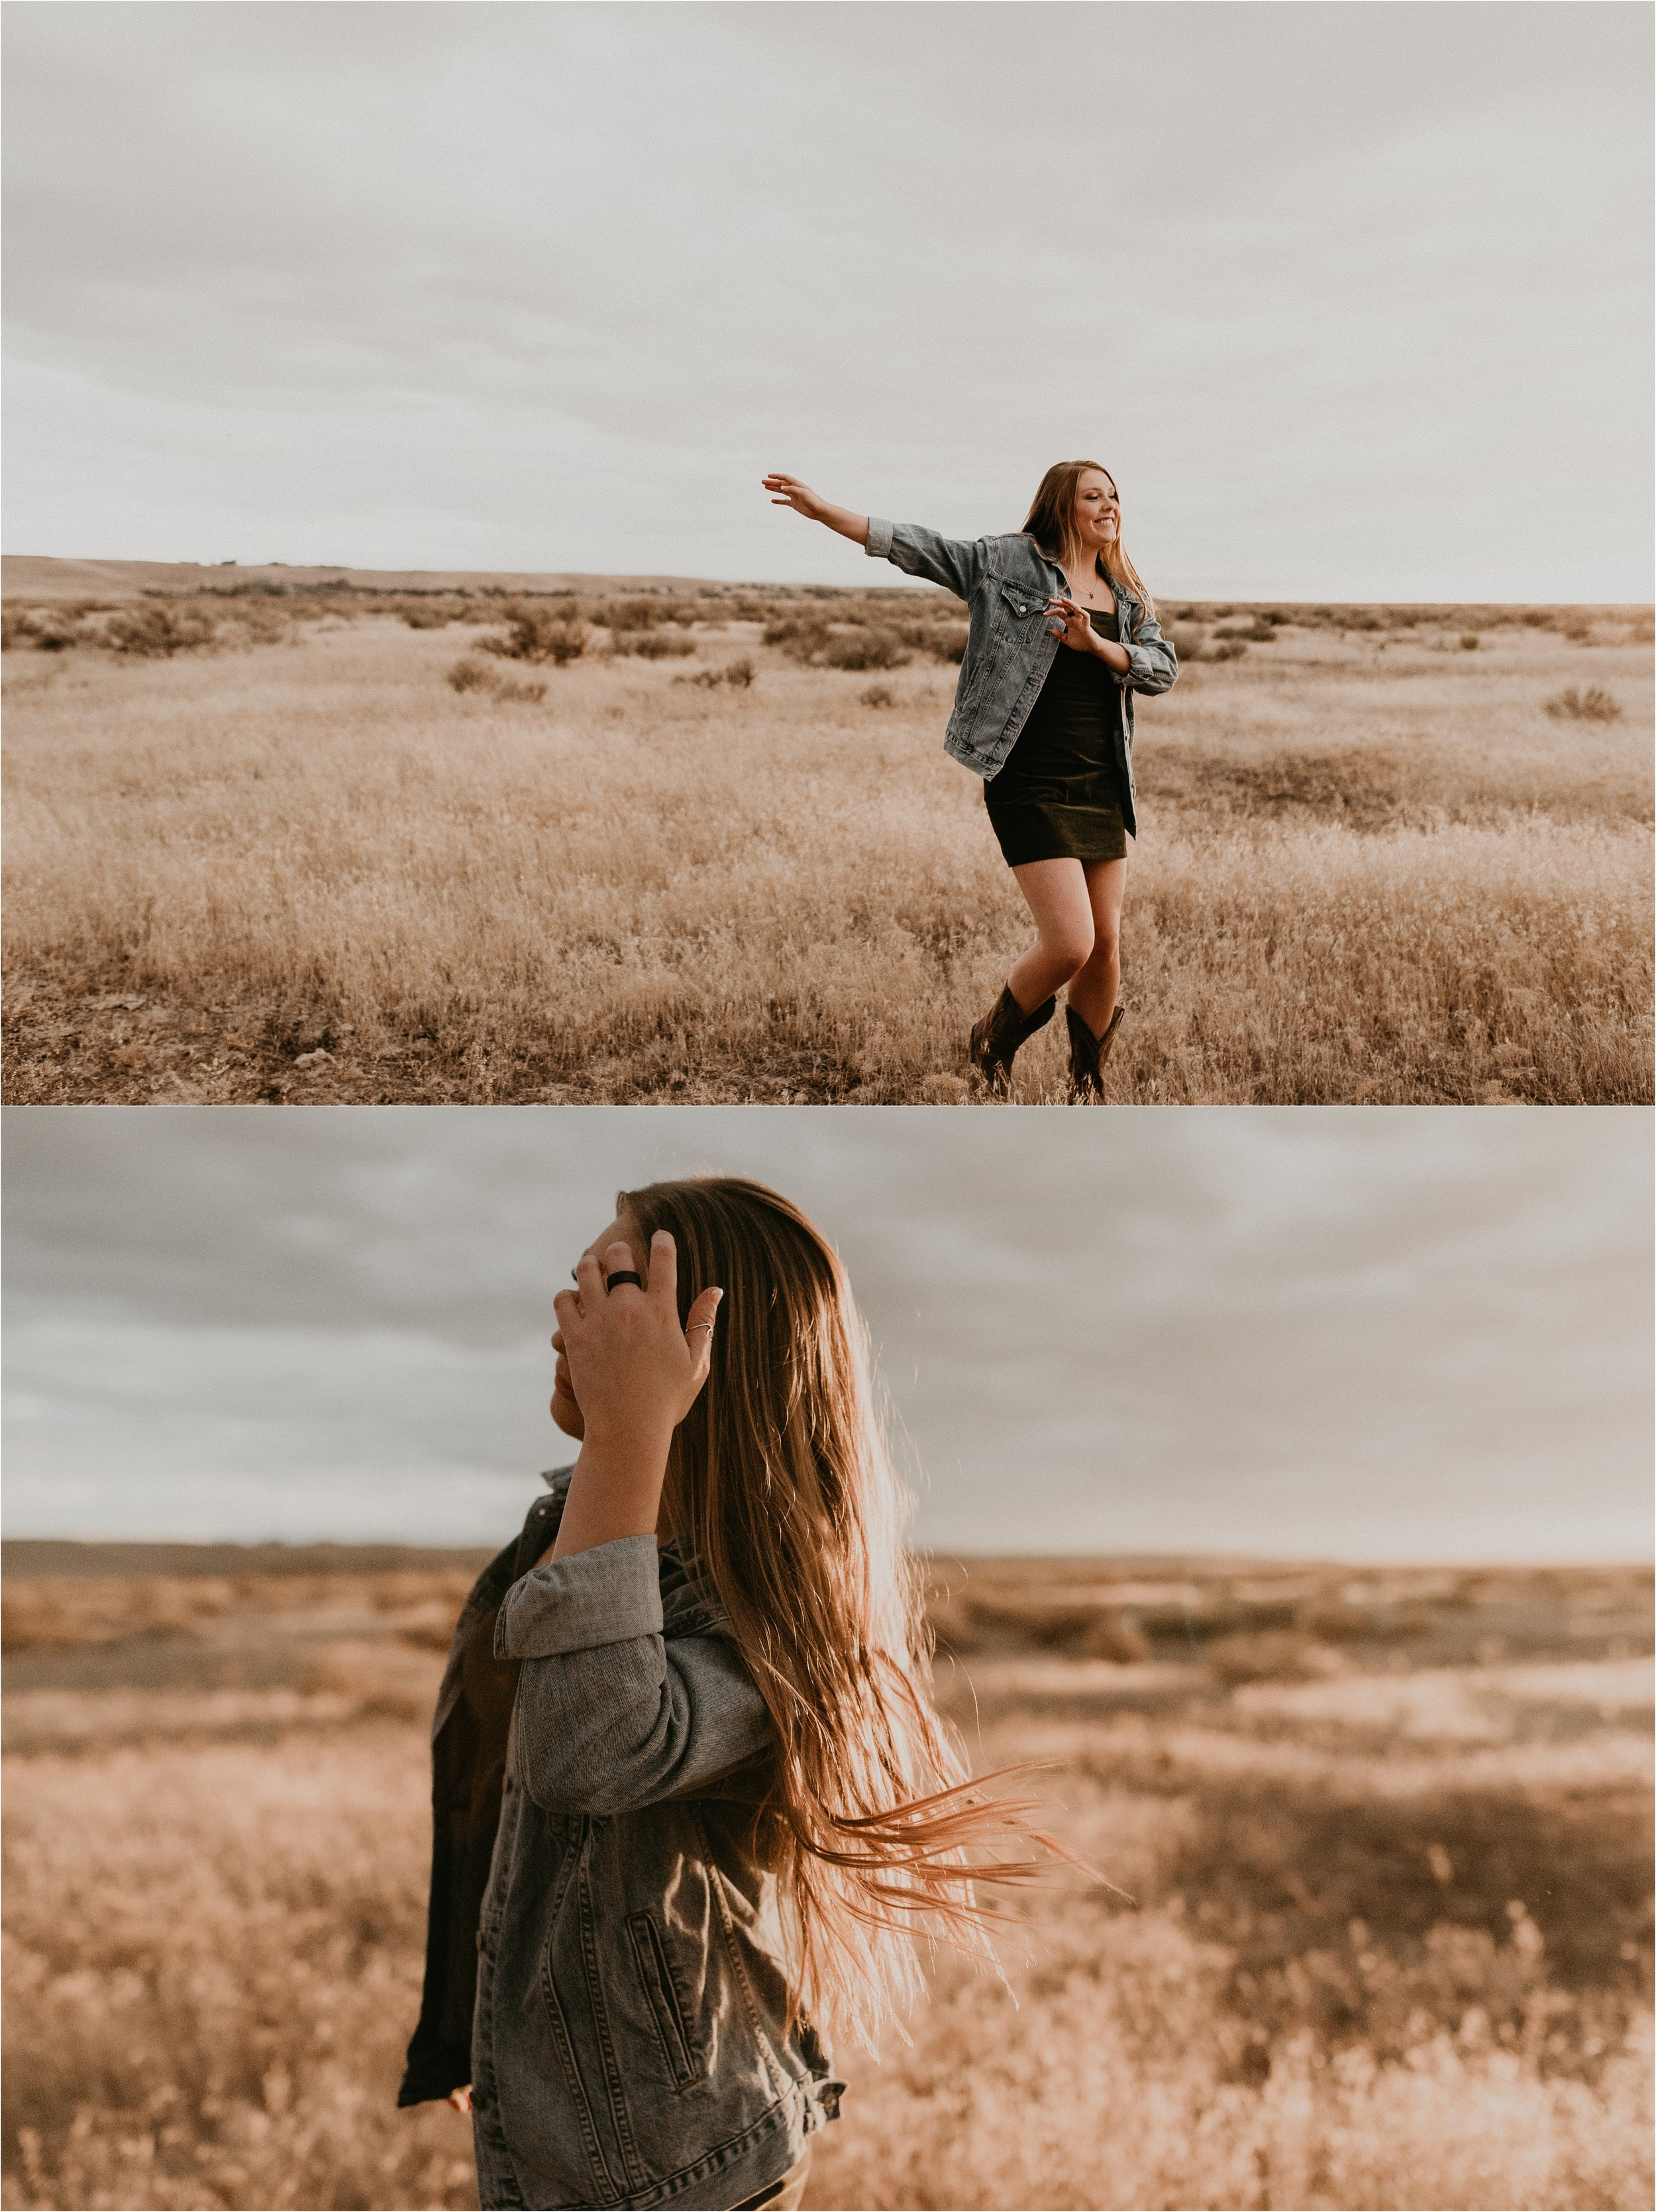 Boise Senior Photographer Makayla Madden Photography Boise Foothills Country Rustic Senior Pictures Senior Girl Outfit Inspiration Idaho Senior Photography Dancing